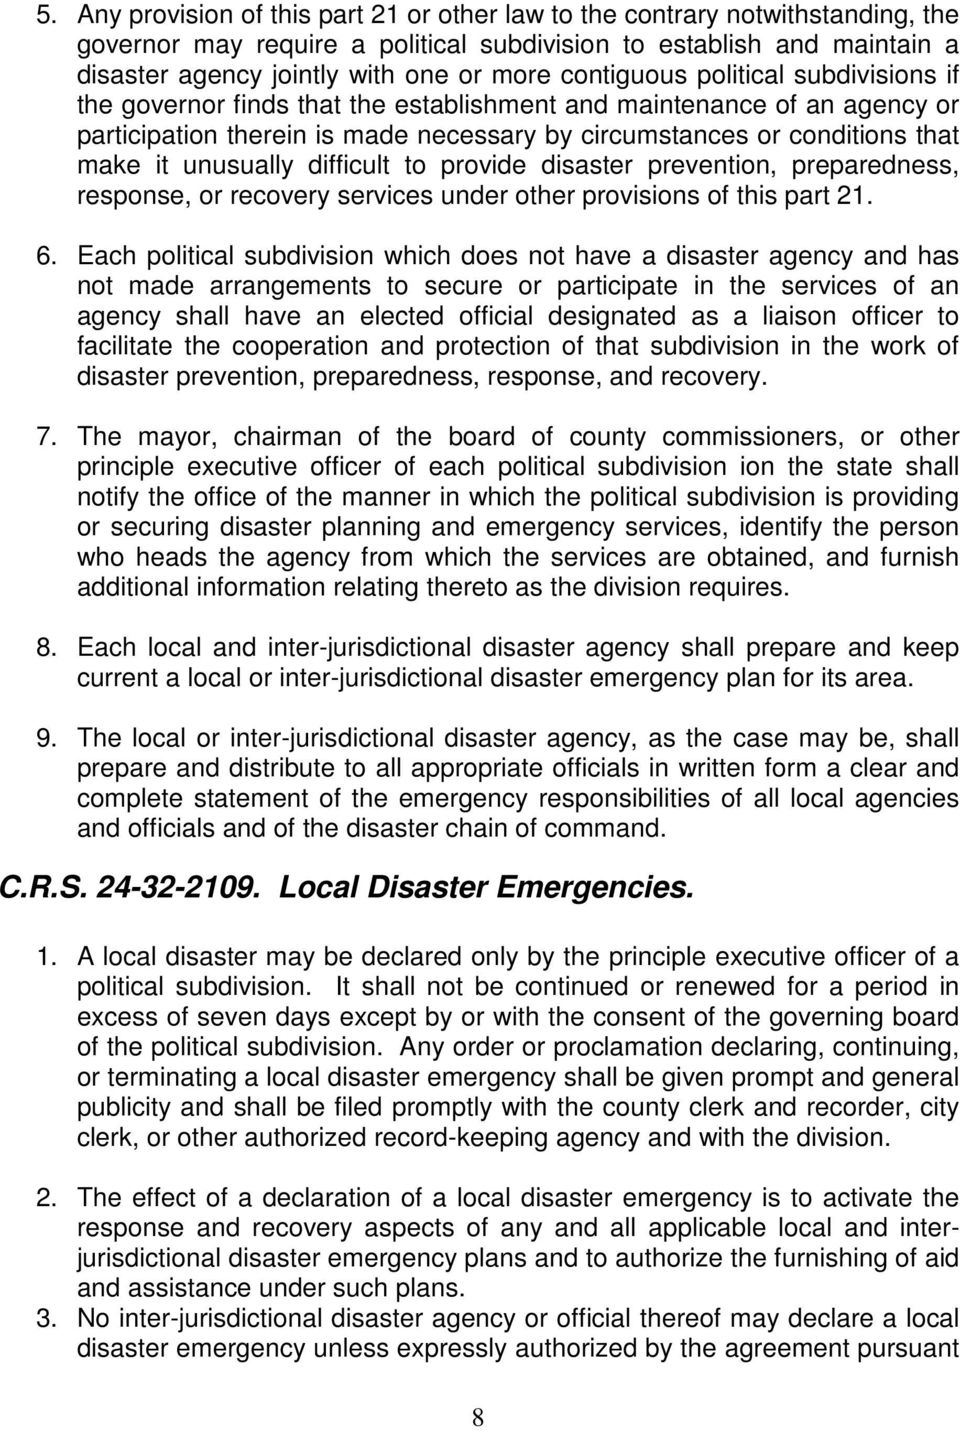 unusually difficult to provide disaster prevention, preparedness, response, or recovery services under other provisions of this part 21. 6.